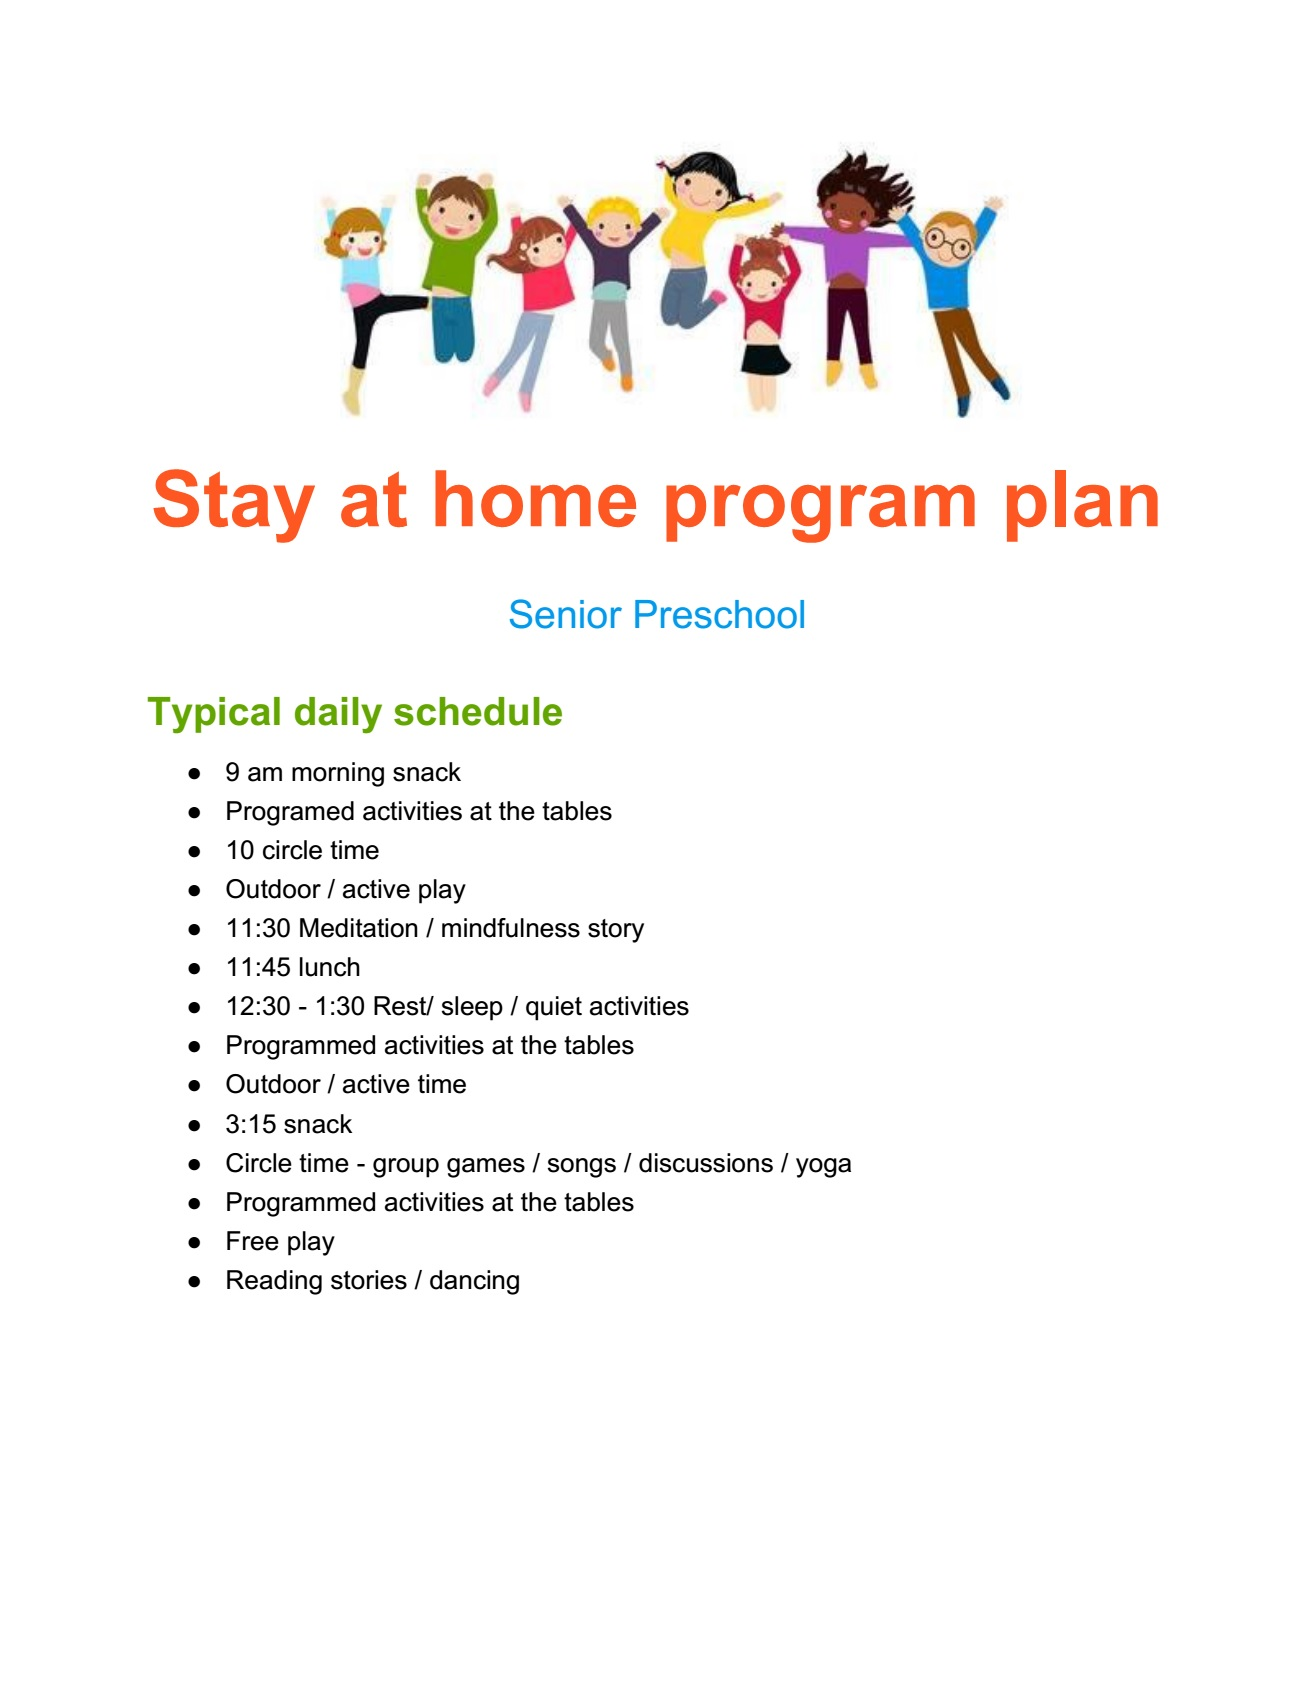 Stay at home program plan Sr Preschool page 1